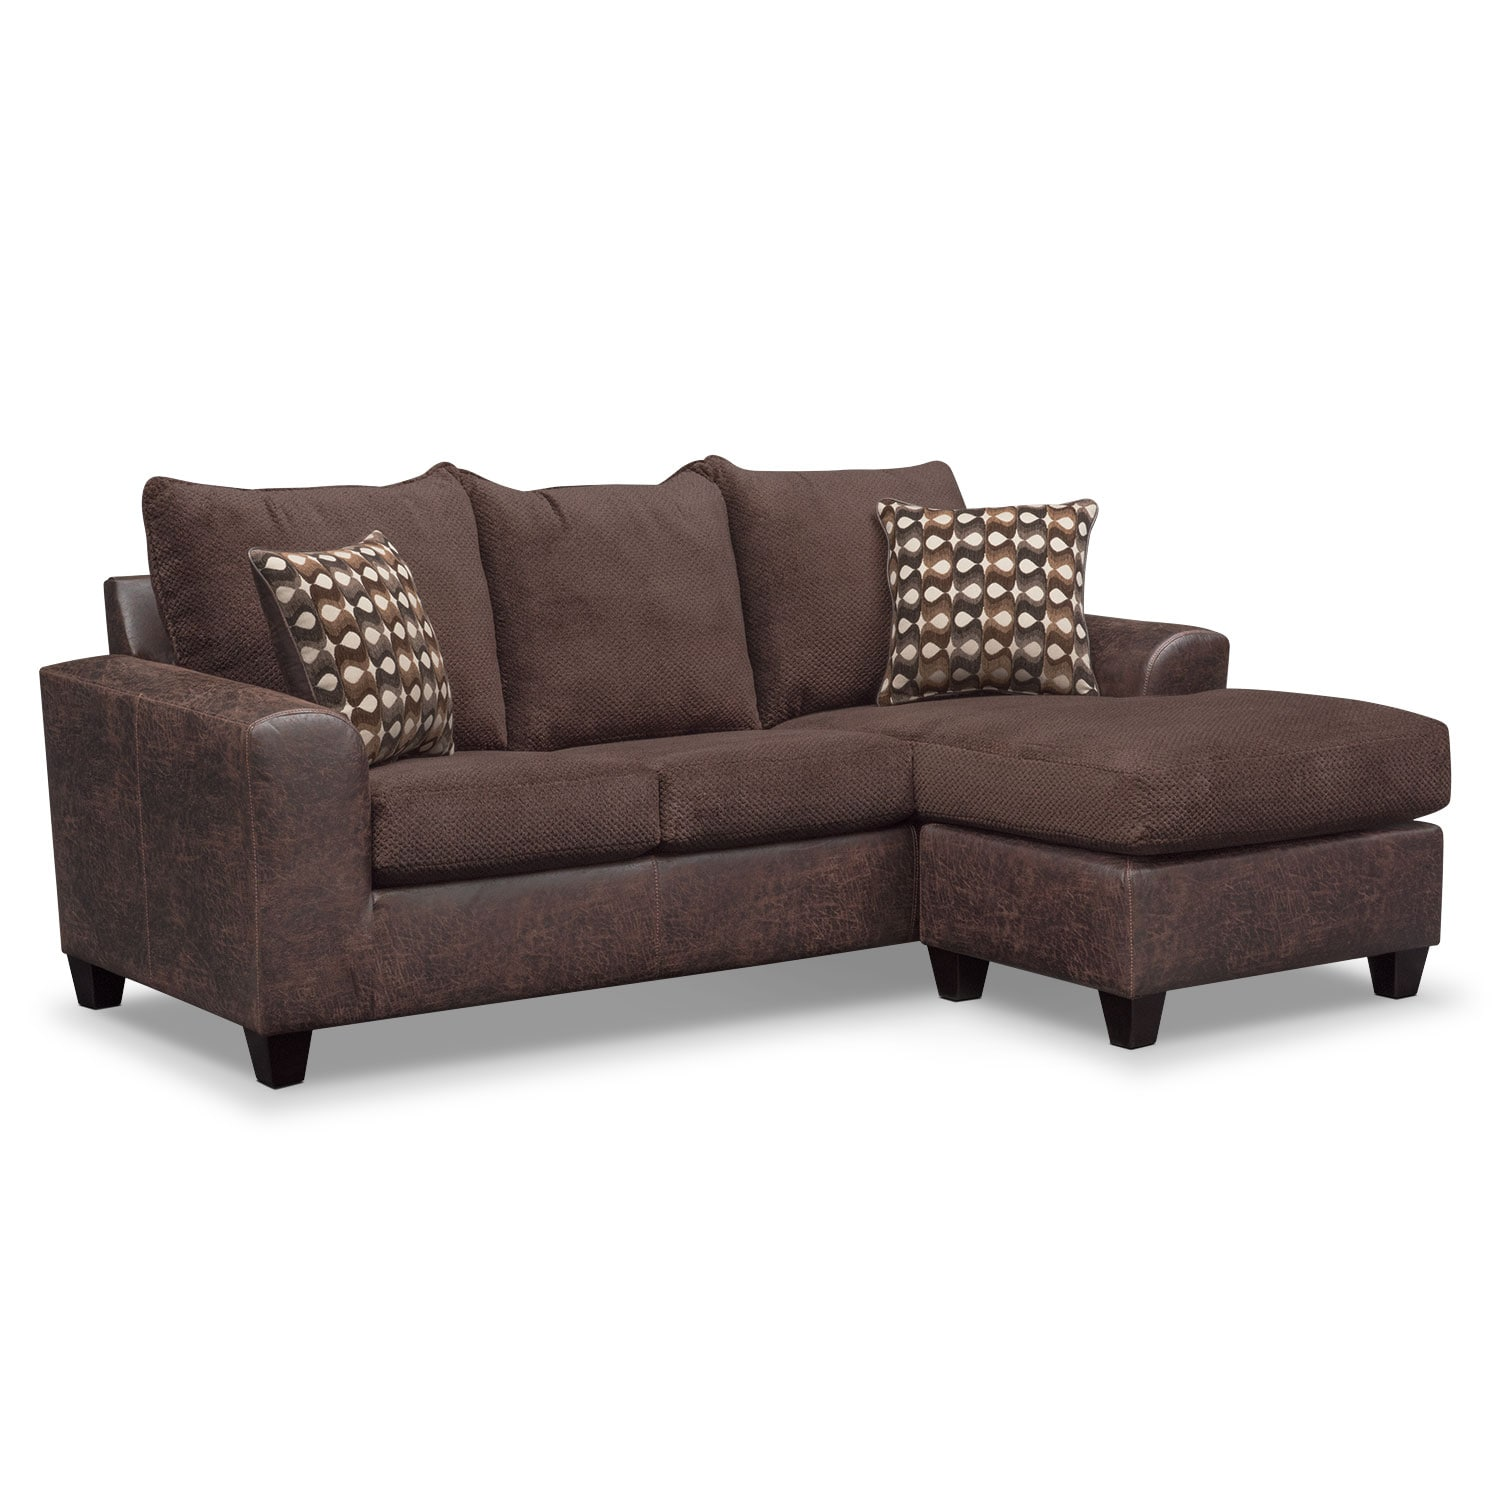 Delicieux Living Room Furniture   Brando Sofa With Chaise